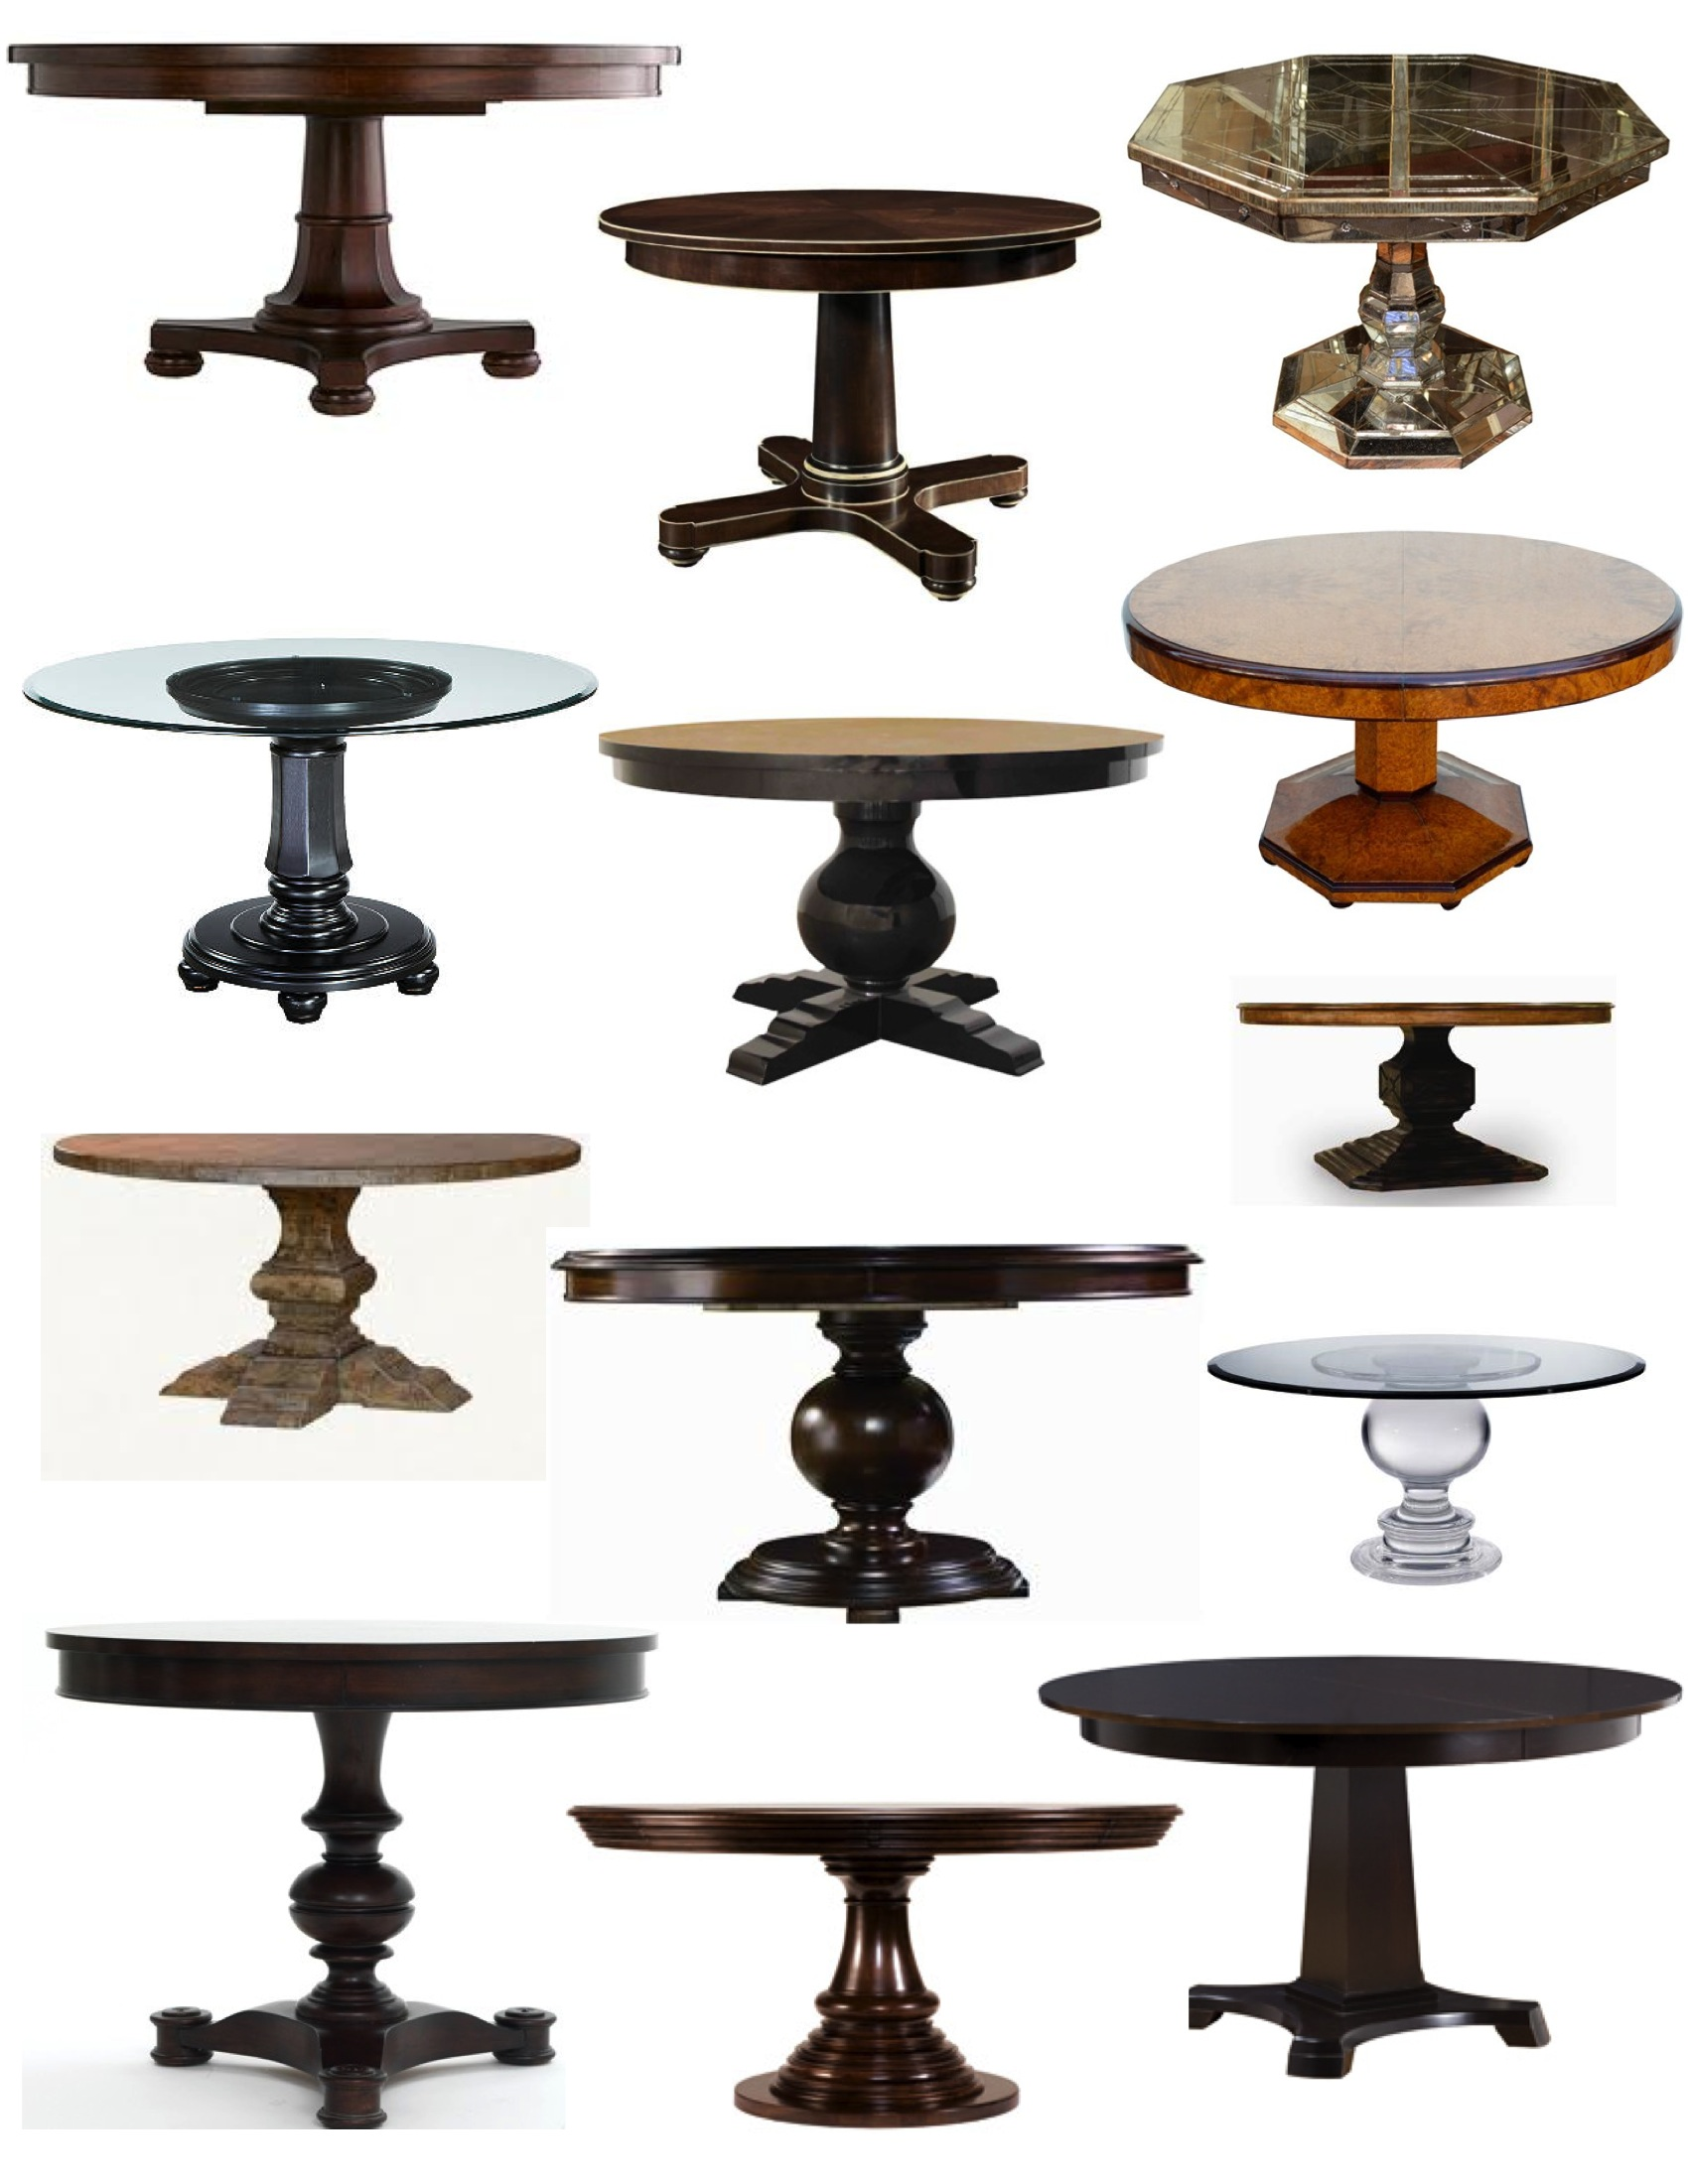 round tall brass for sale metal tables room glass table bases pedestals and center dining pedestal base